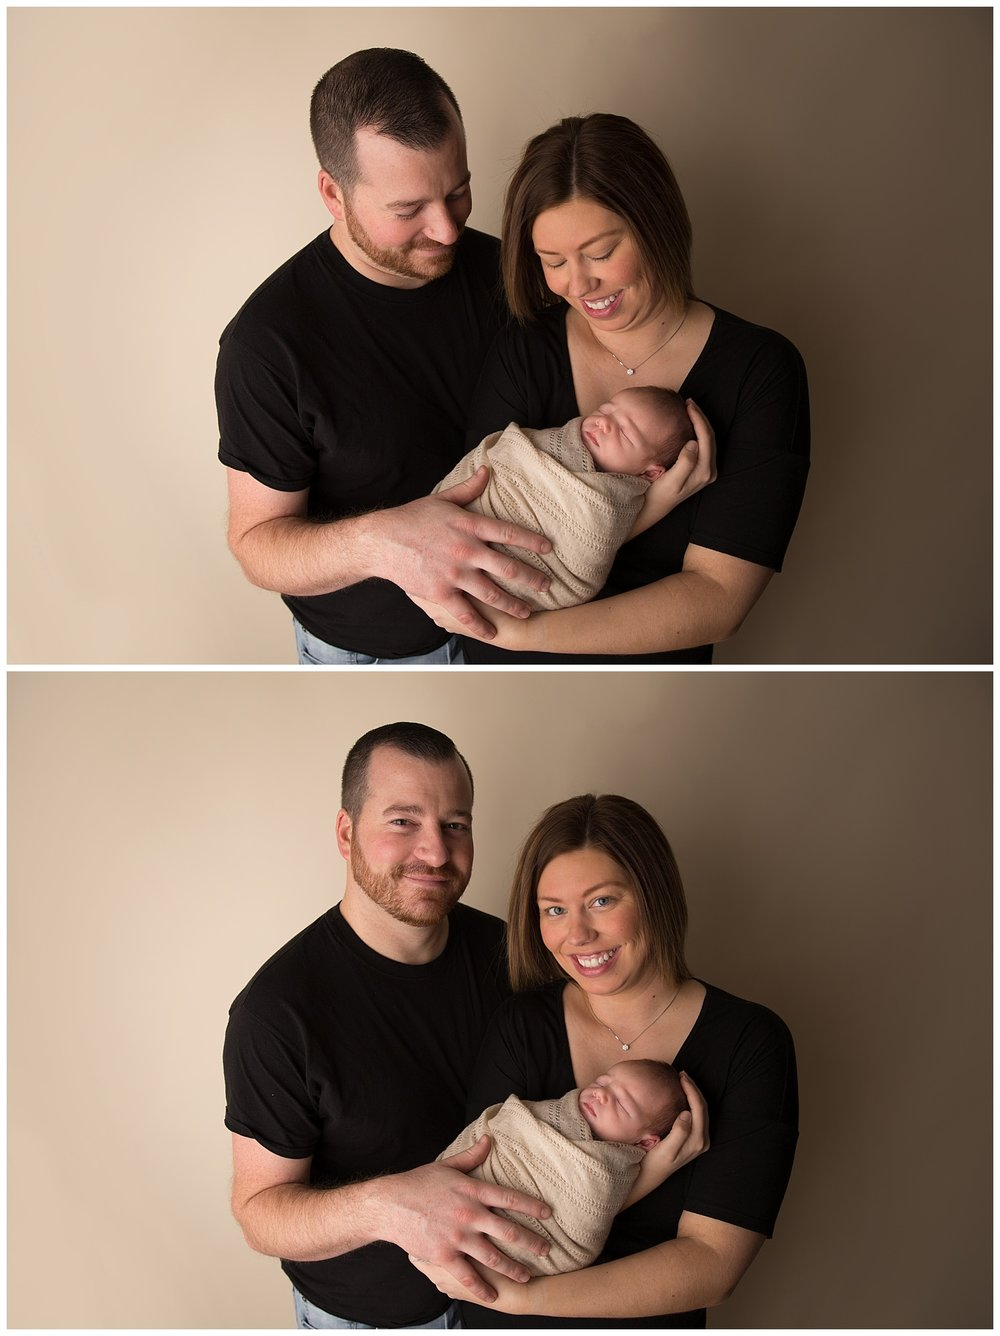 family holding their newborn baby in photo shoot in burlington new jersey